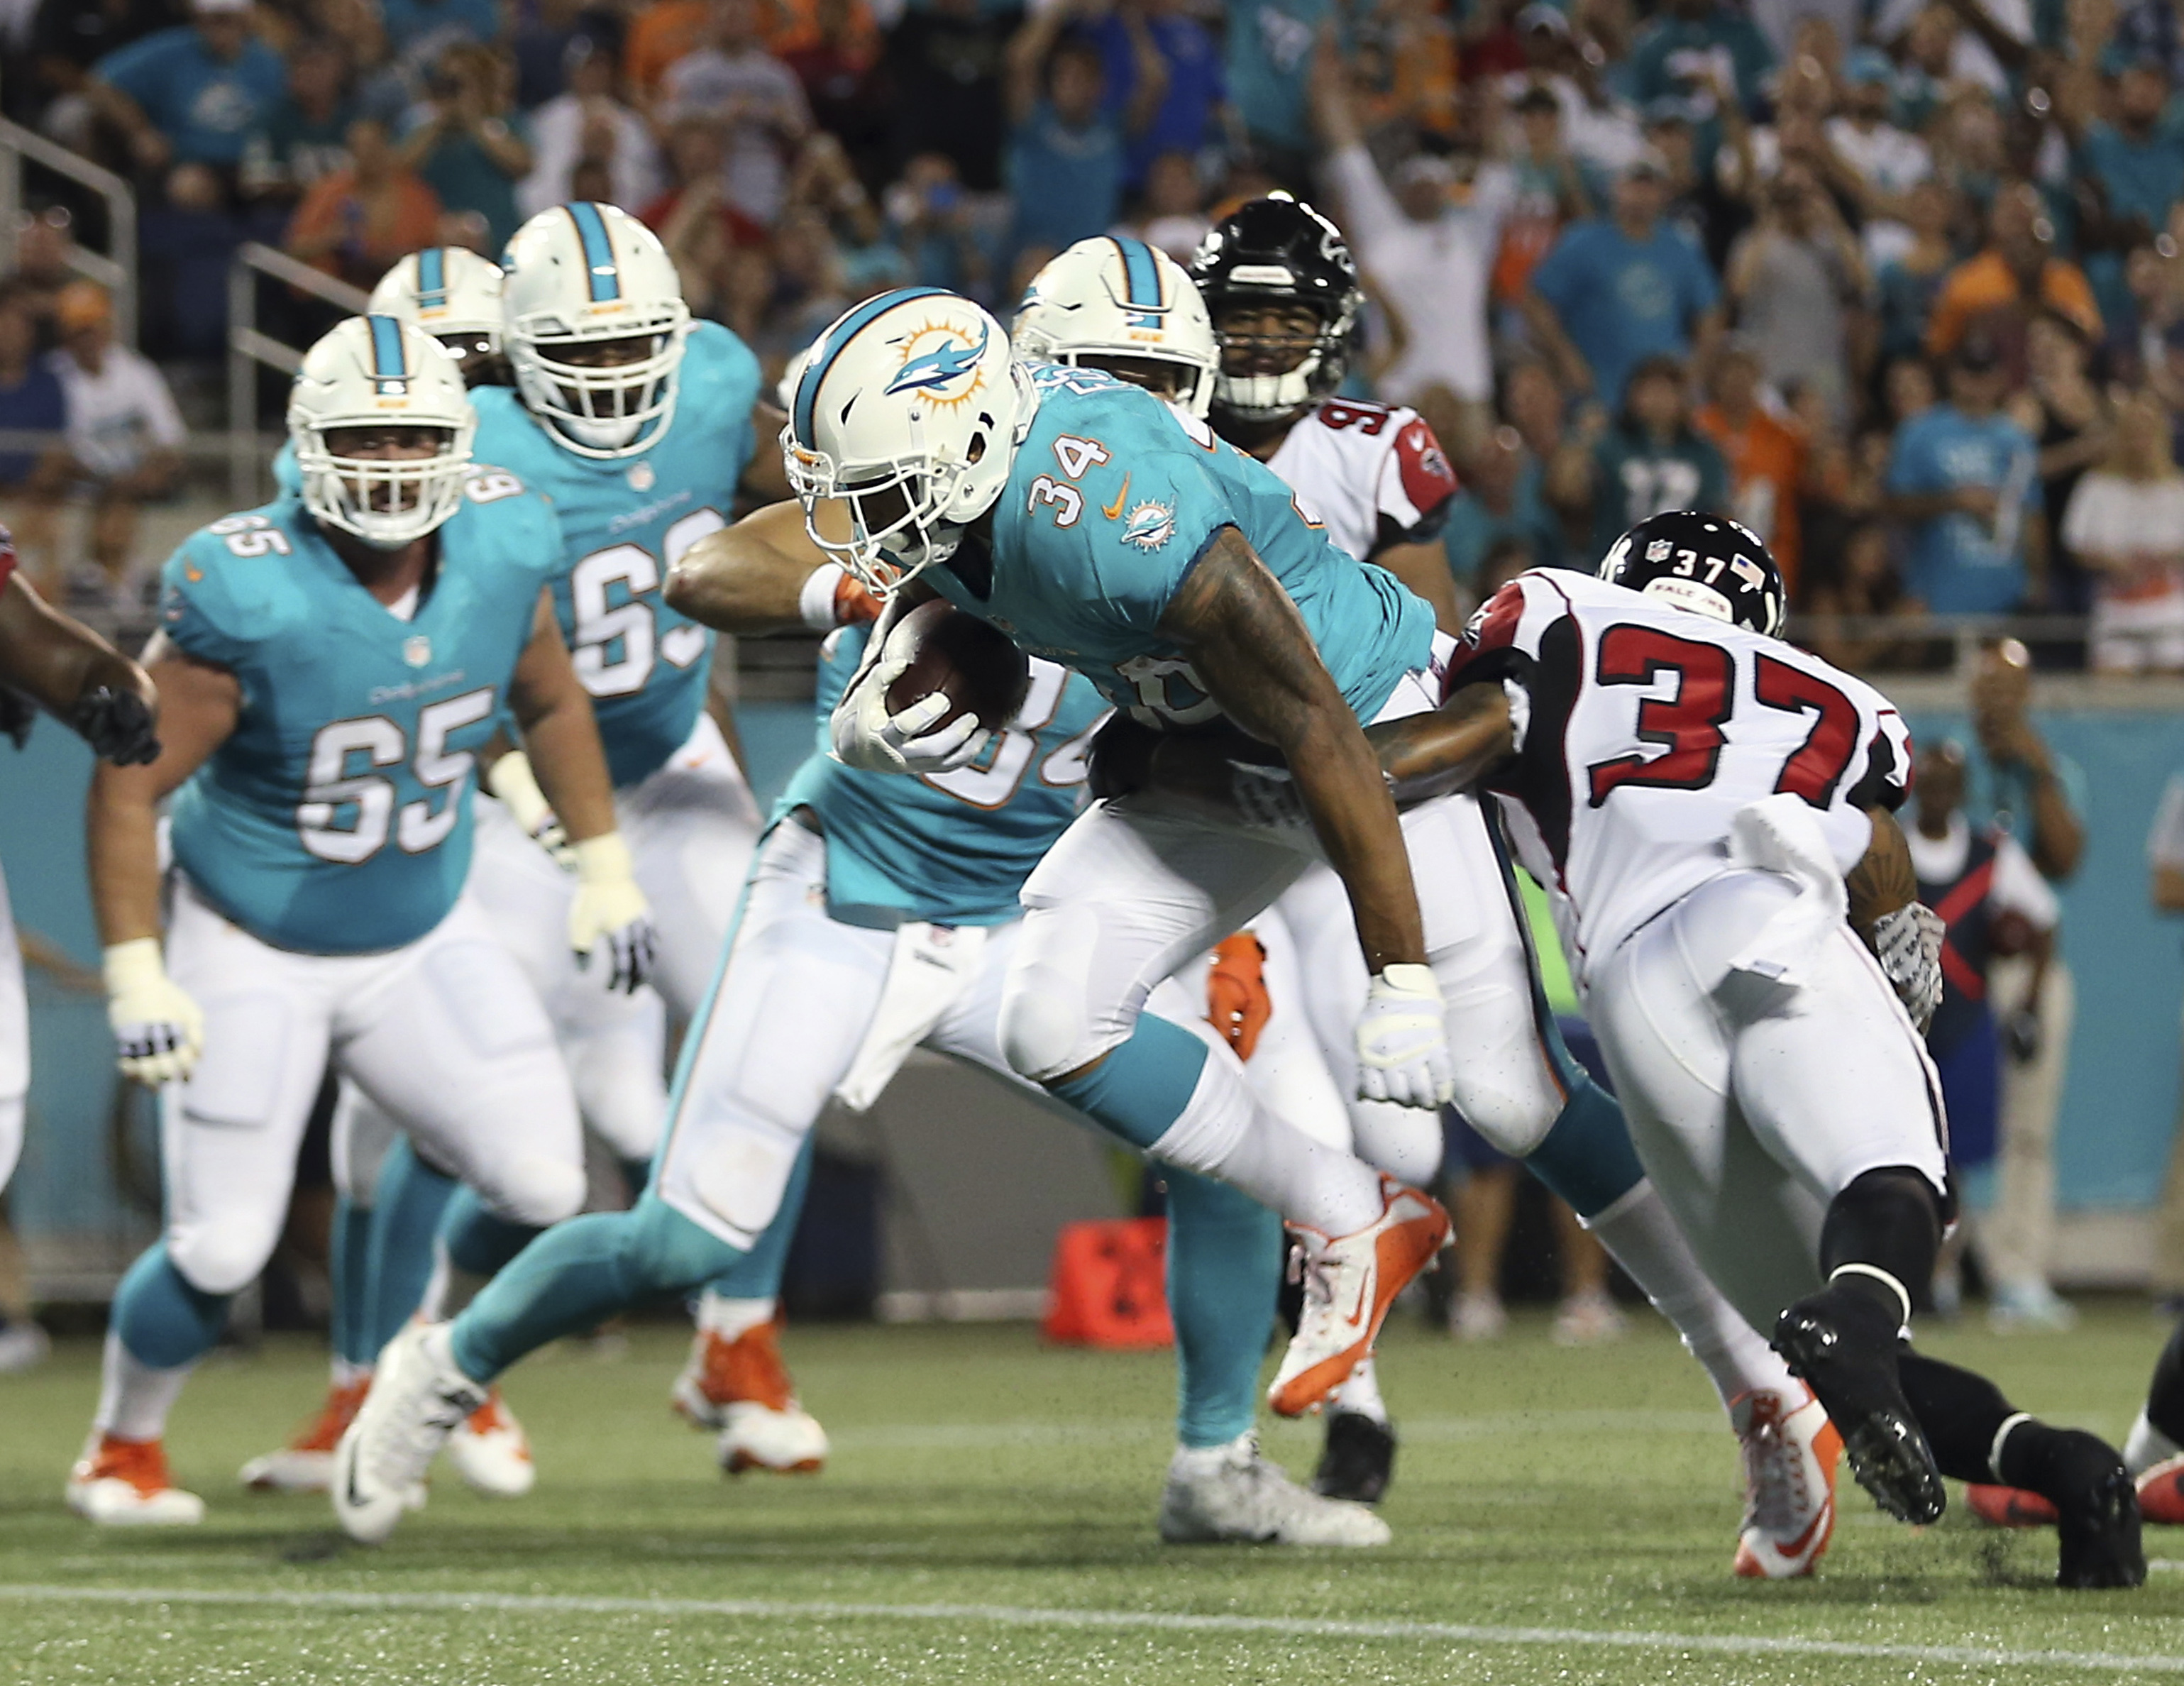 Miami Dolphins' Arian Foster (34) runs for a 2-yard touchdown past Atlanta Falcons free safety Ricardo Allen (37) during the first half of an NFL preseason football game in Orlando, Fla., Thursday, Aug. 25, 2016.(AP Photo/Willie J. Allen Jr.)